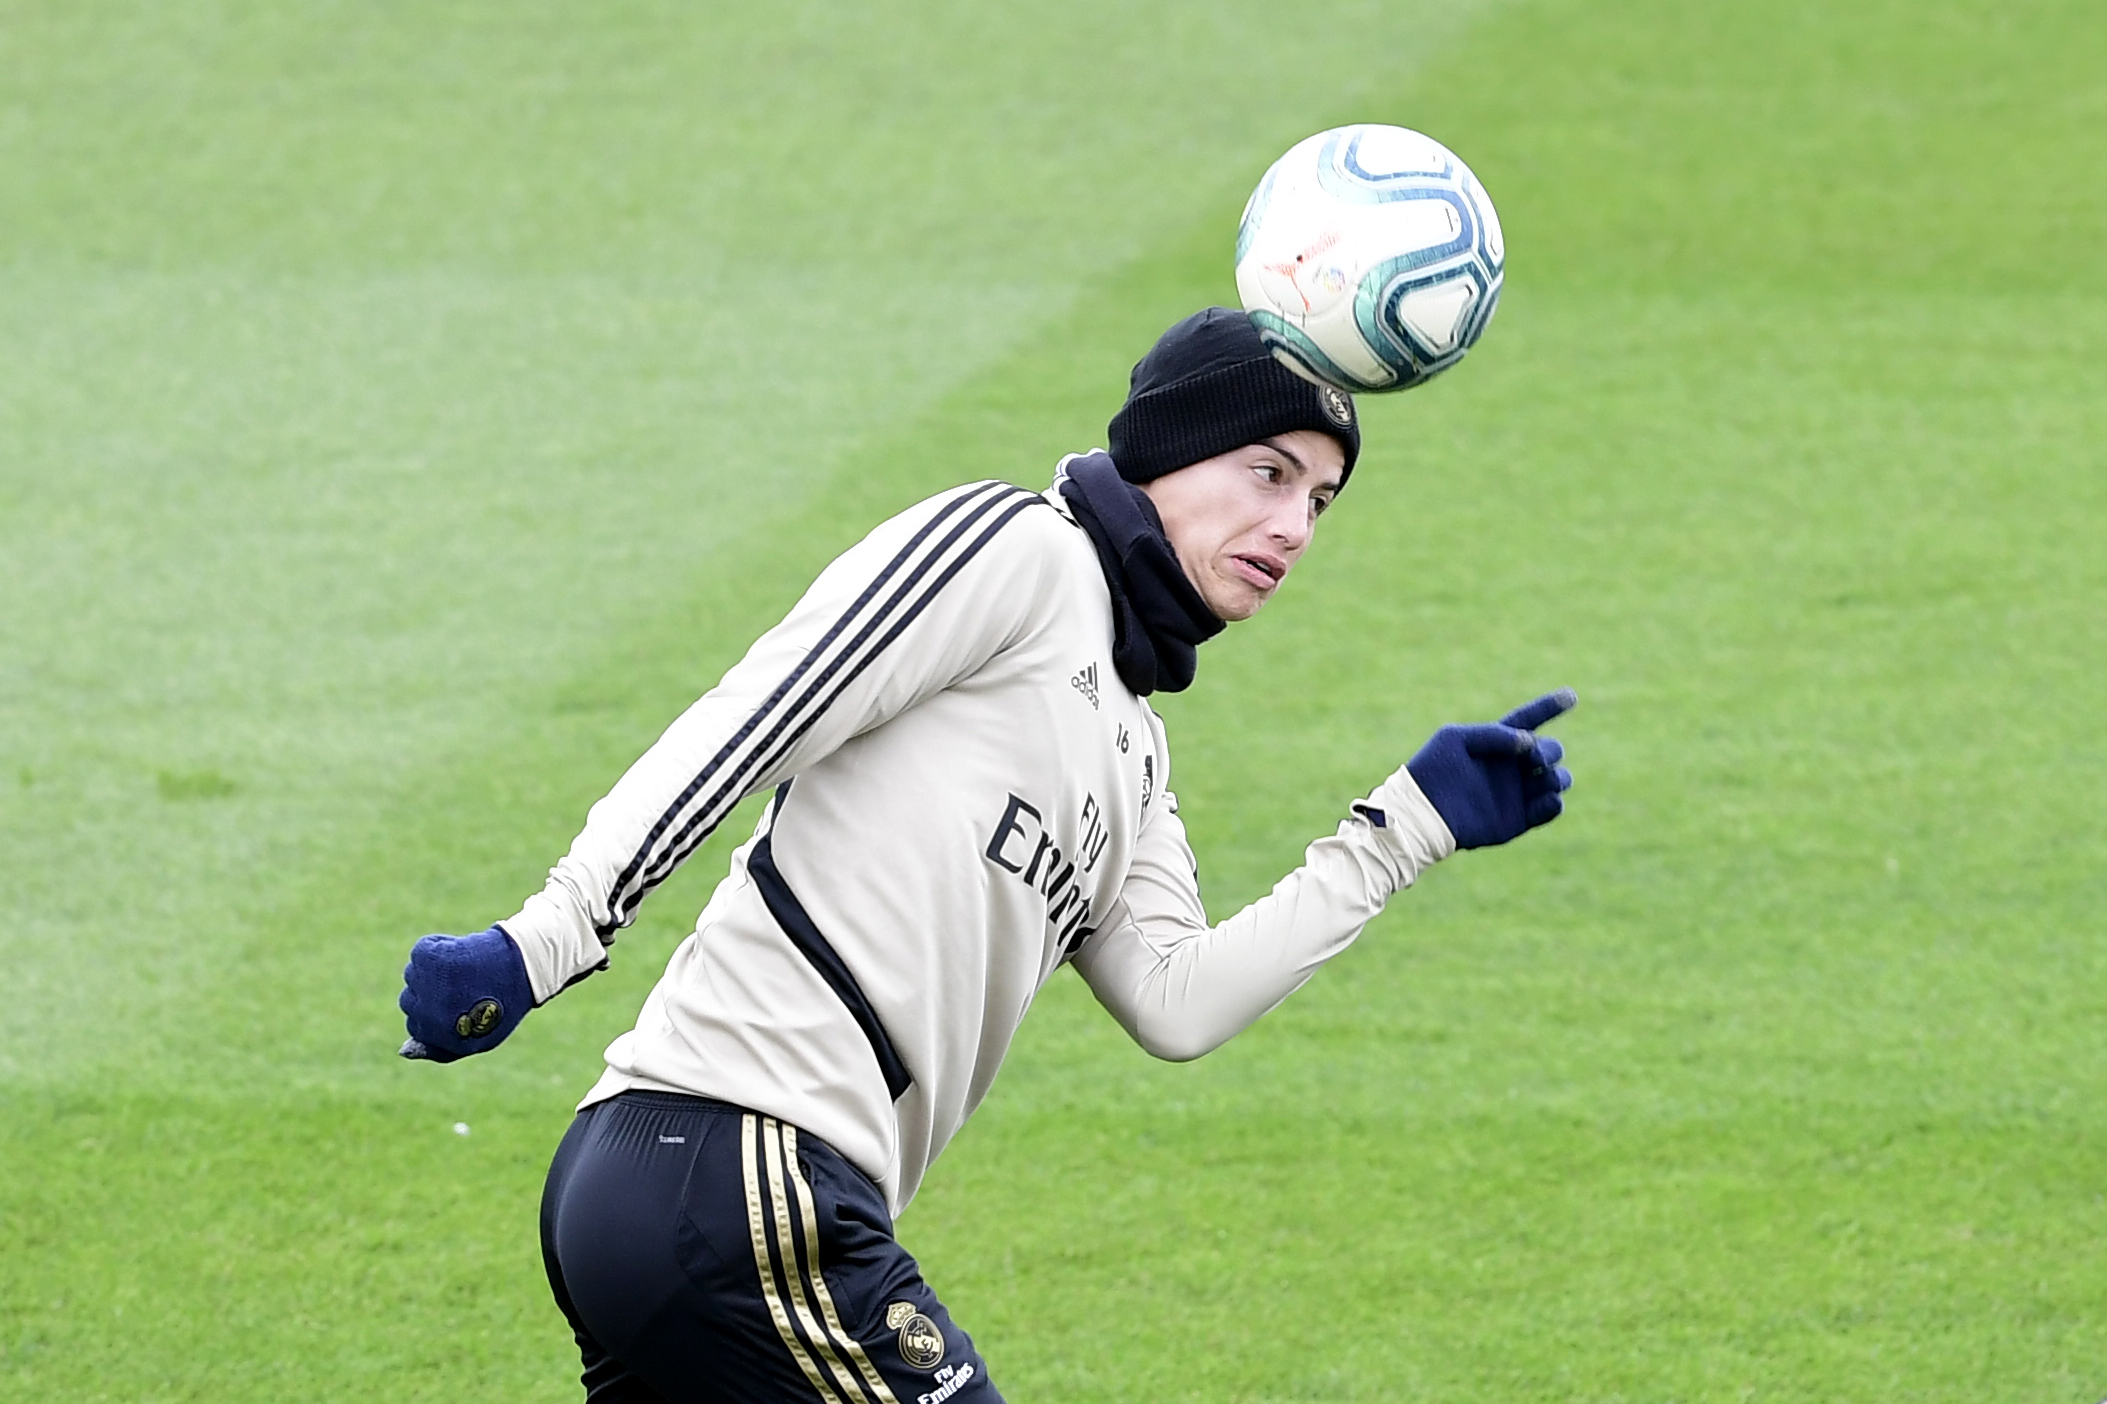 James Rodríguez heads a ball during a training session at the club's training ground